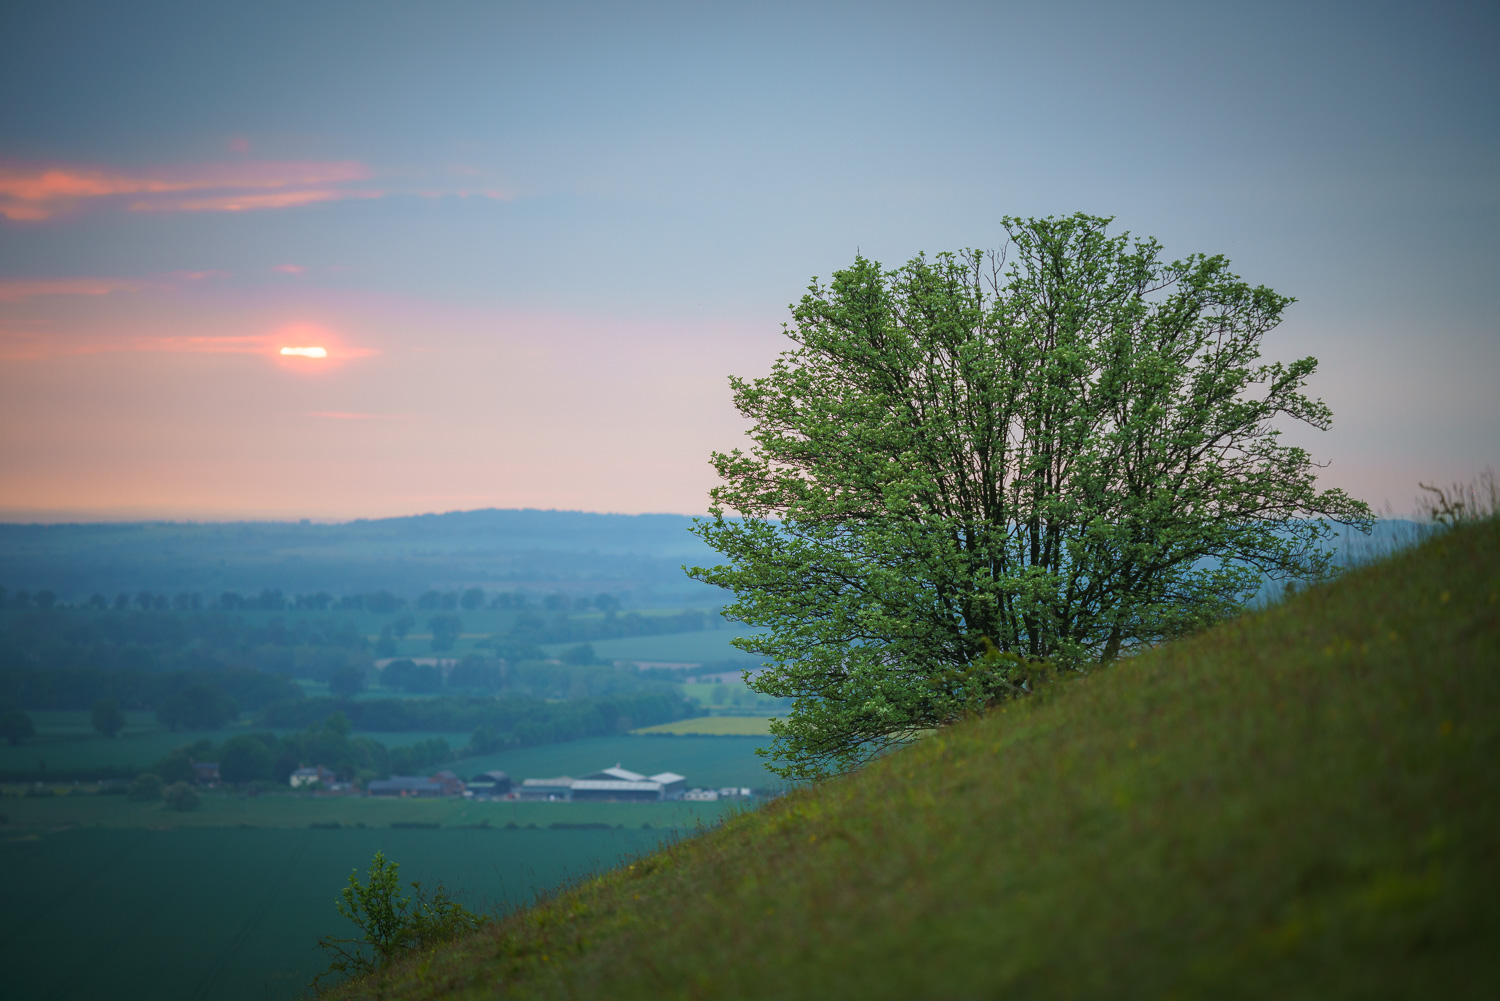 Sunset view from Aston Rowant